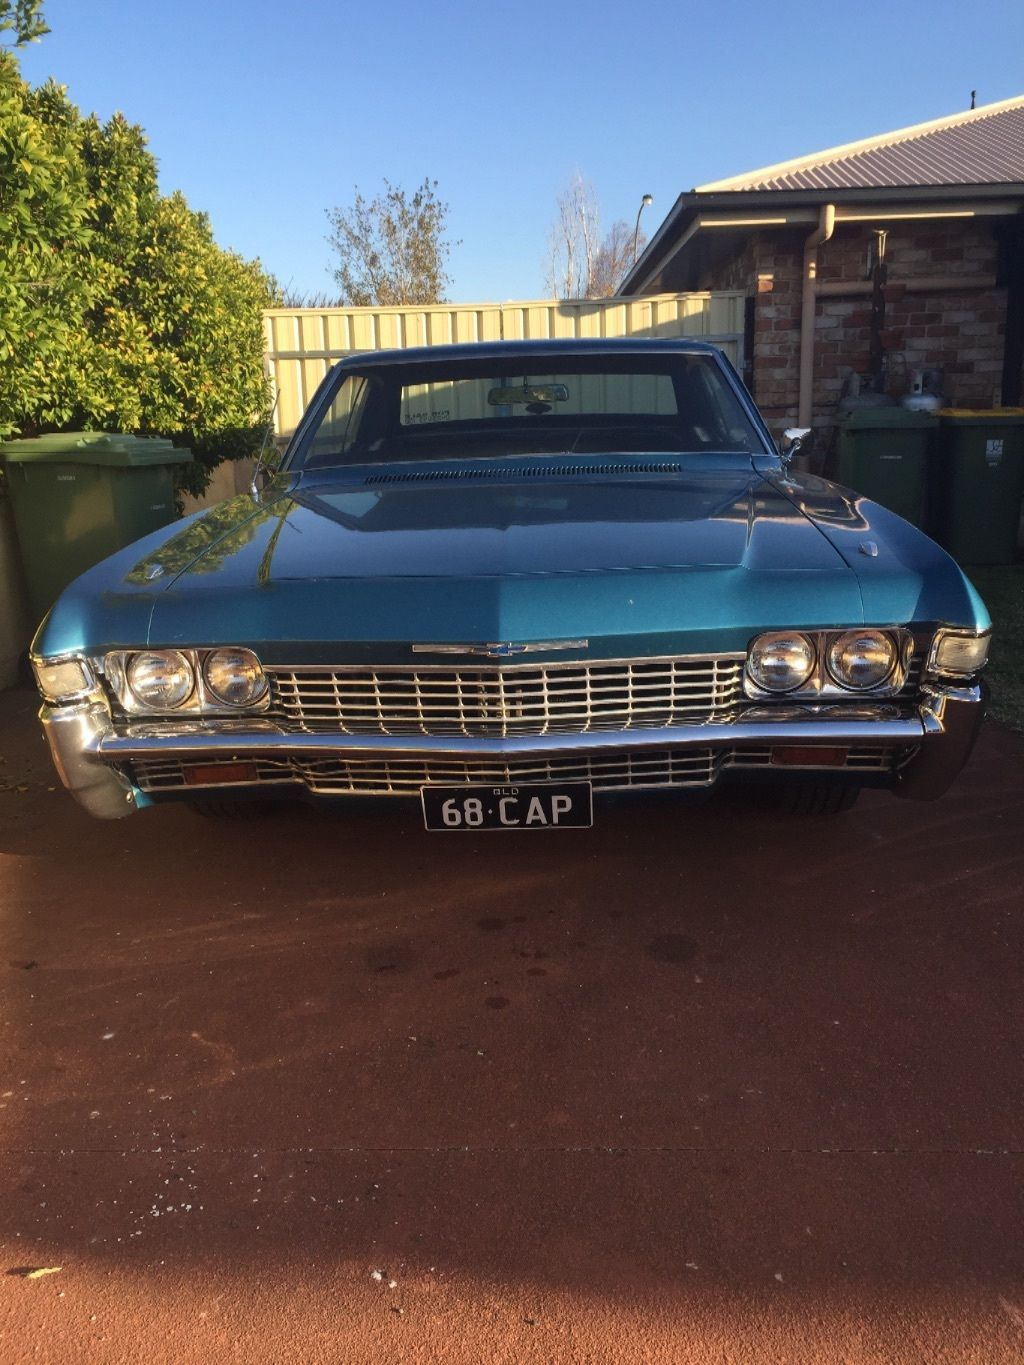 1968 Chevrolet Caprice in Cars, Bikes, Boats, Cars, Collector Cars ...